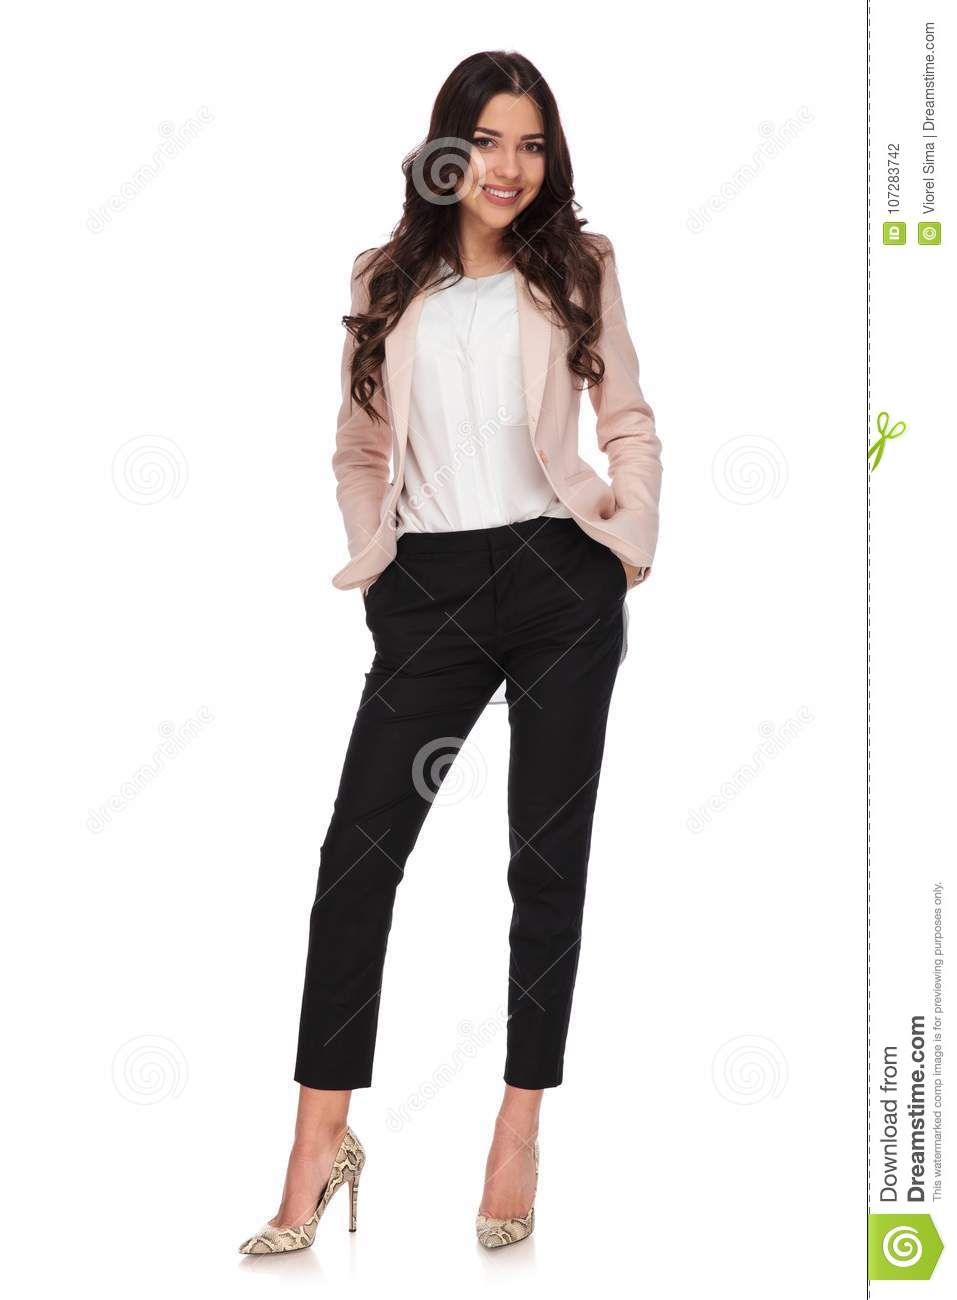 9d8d1f07548a Relaxed business woman standing with hands in her pockets on white  background